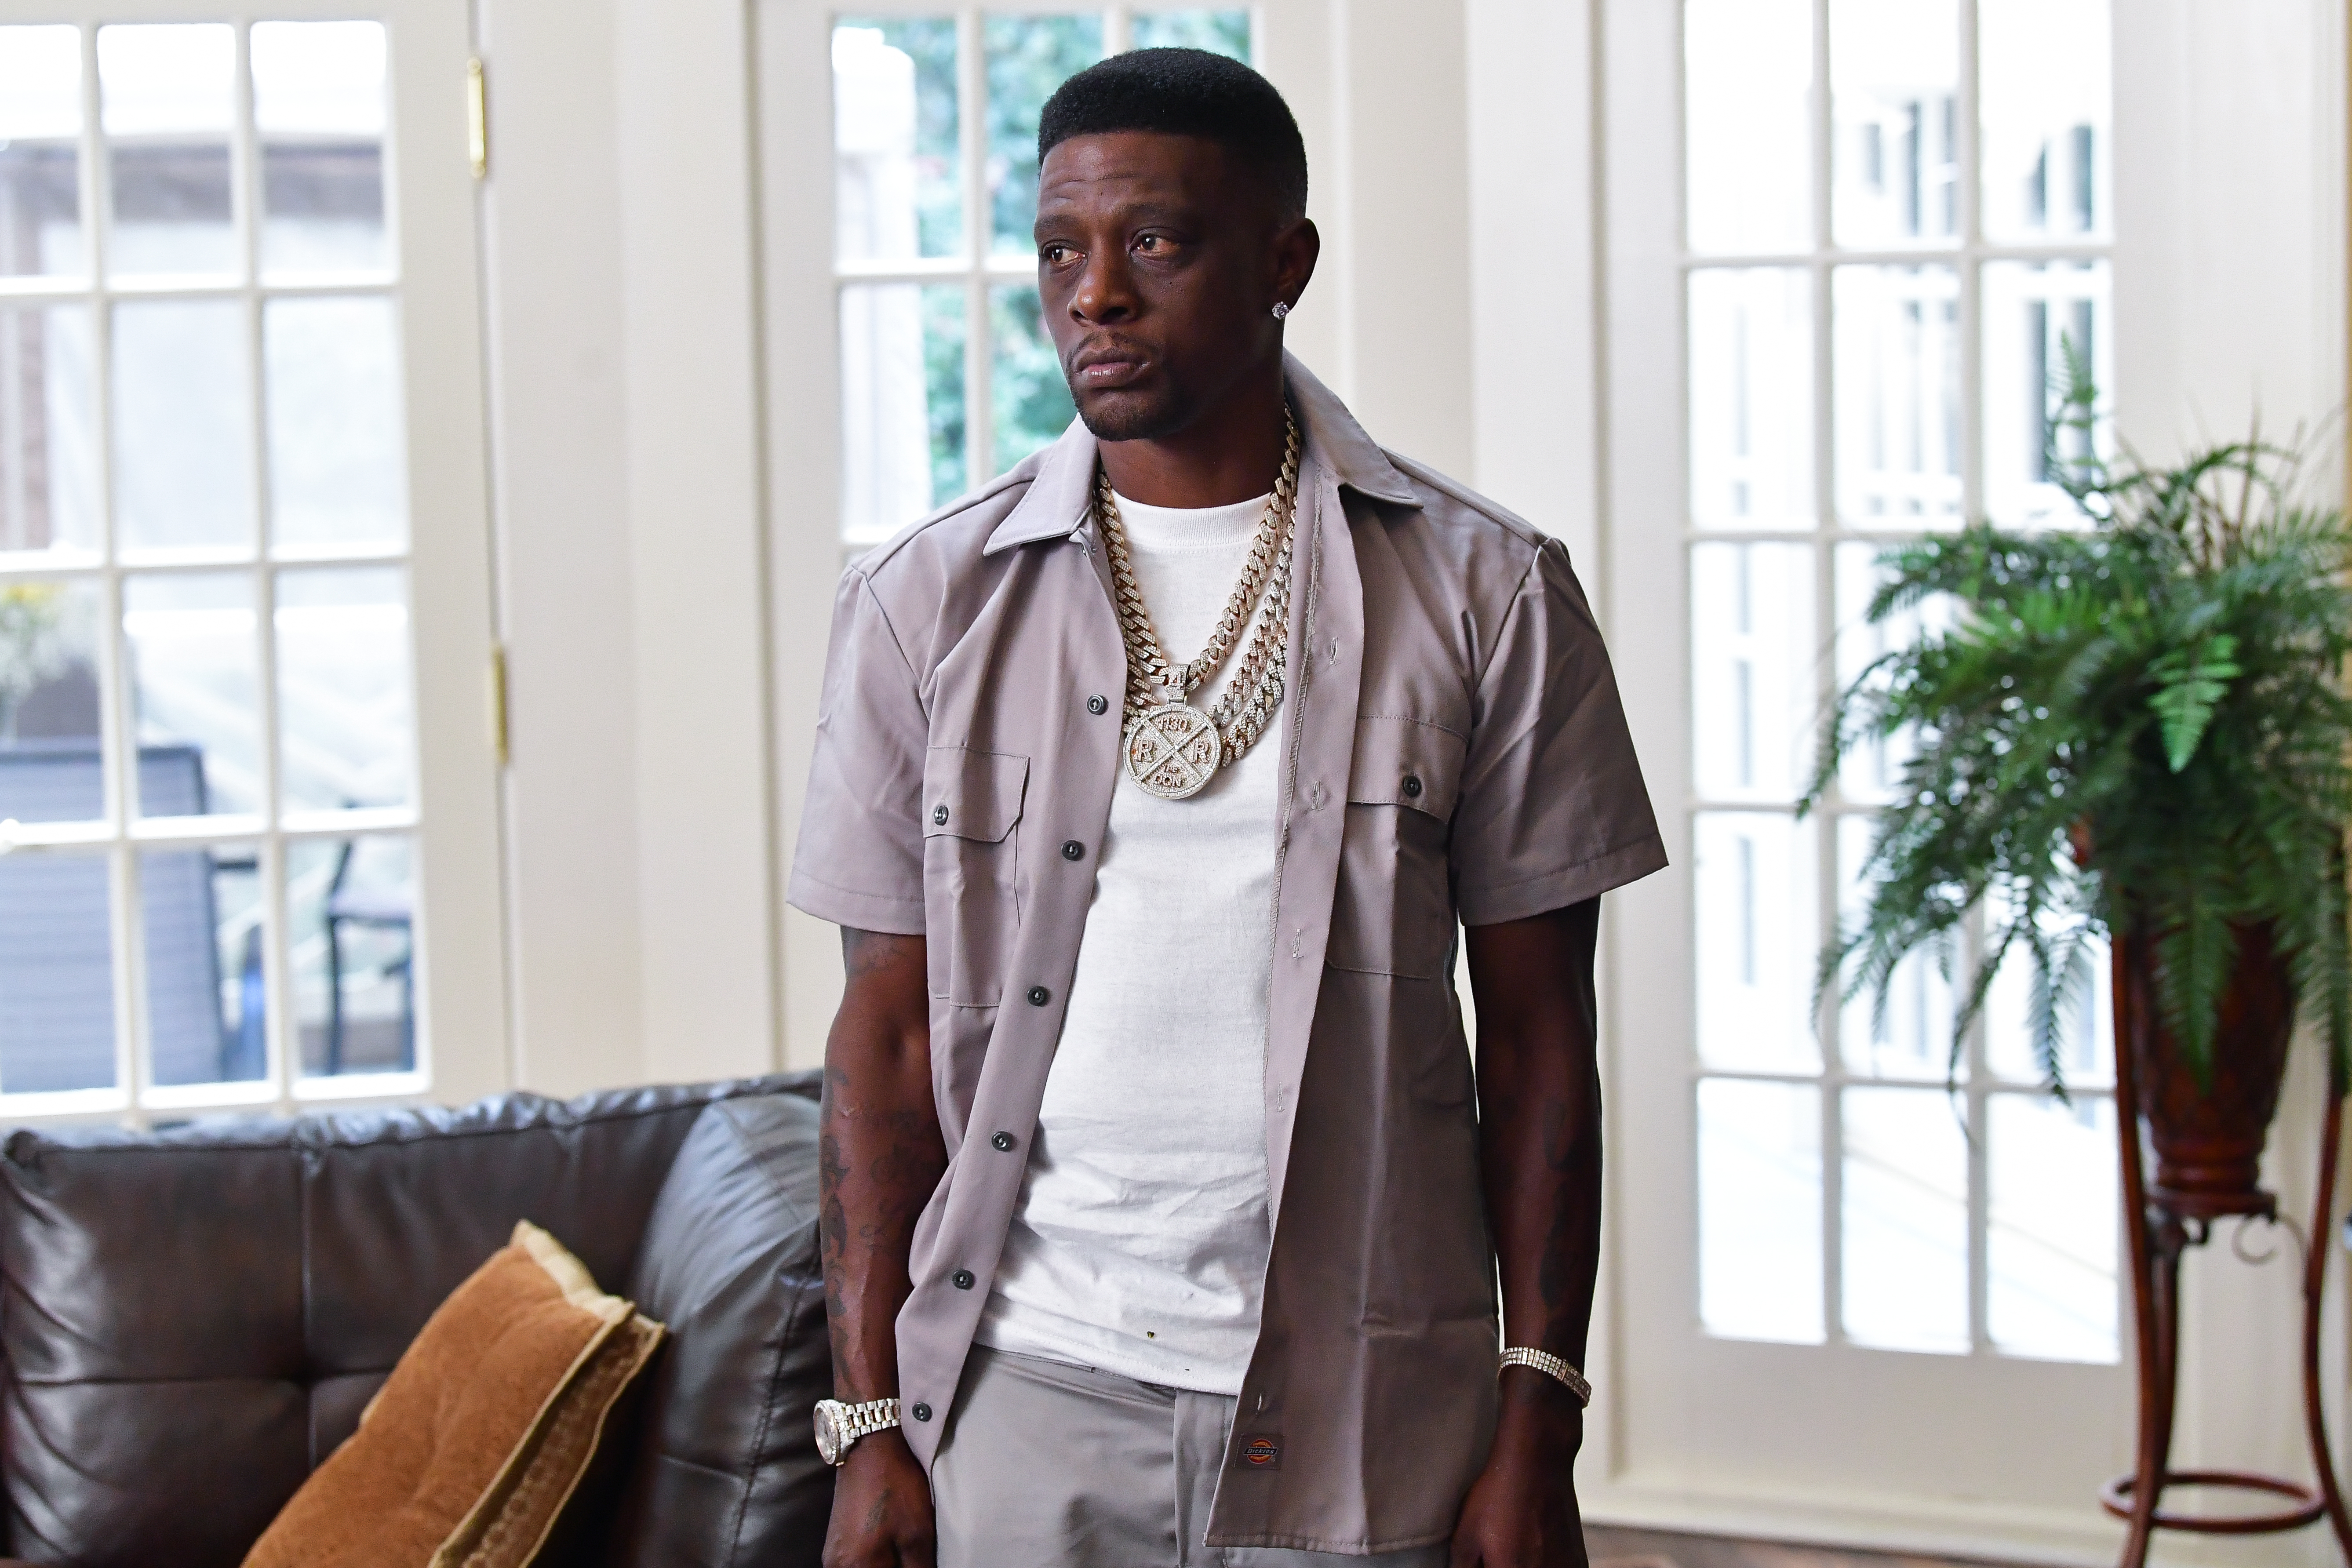 Lil Boosie on set